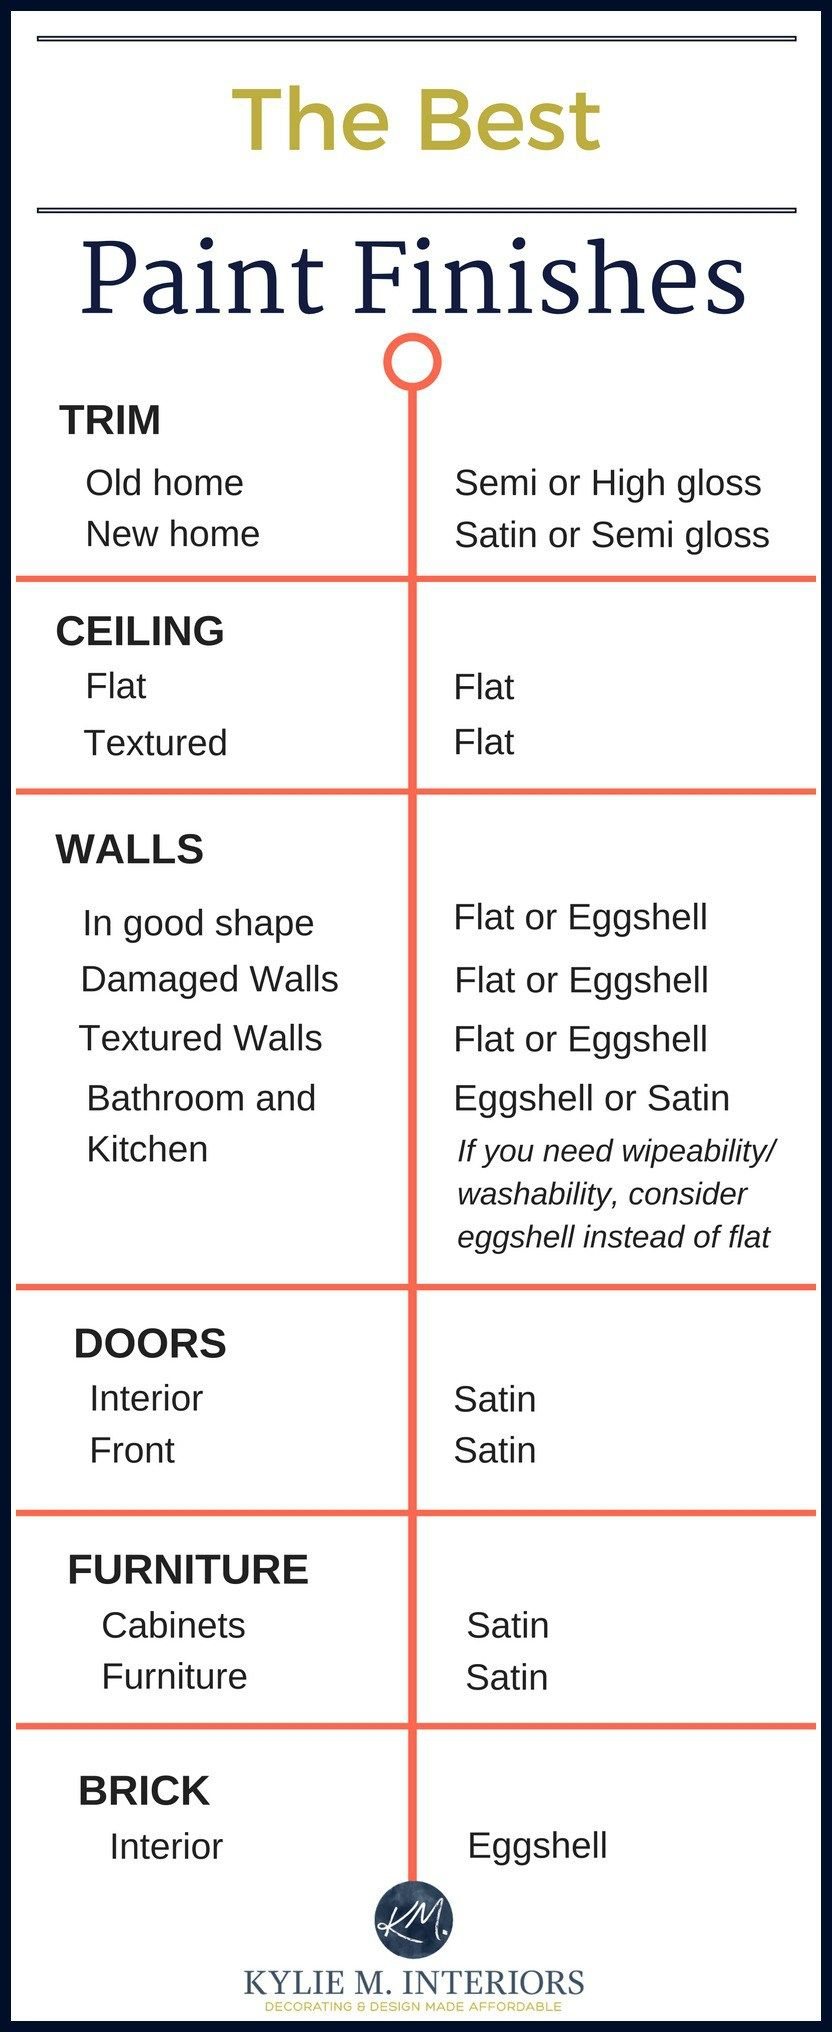 the best paint finish for walls ceilings trims doors and more - Best Exterior Paint Finish